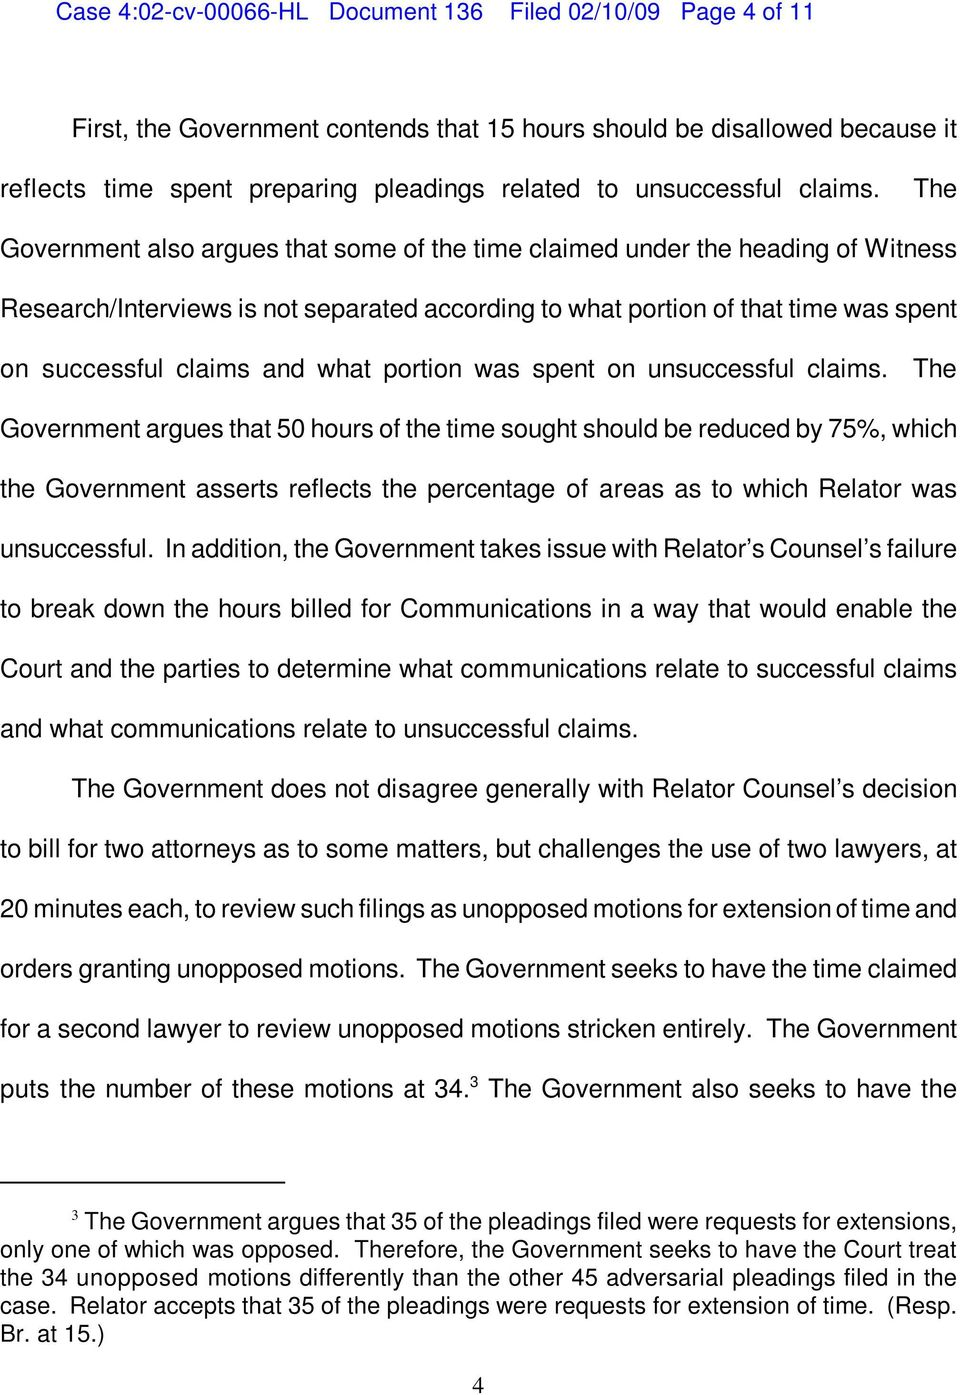 The Government also argues that some of the time claimed under the heading of Witness Research/Interviews is not separated according to what portion of that time was spent on successful claims and